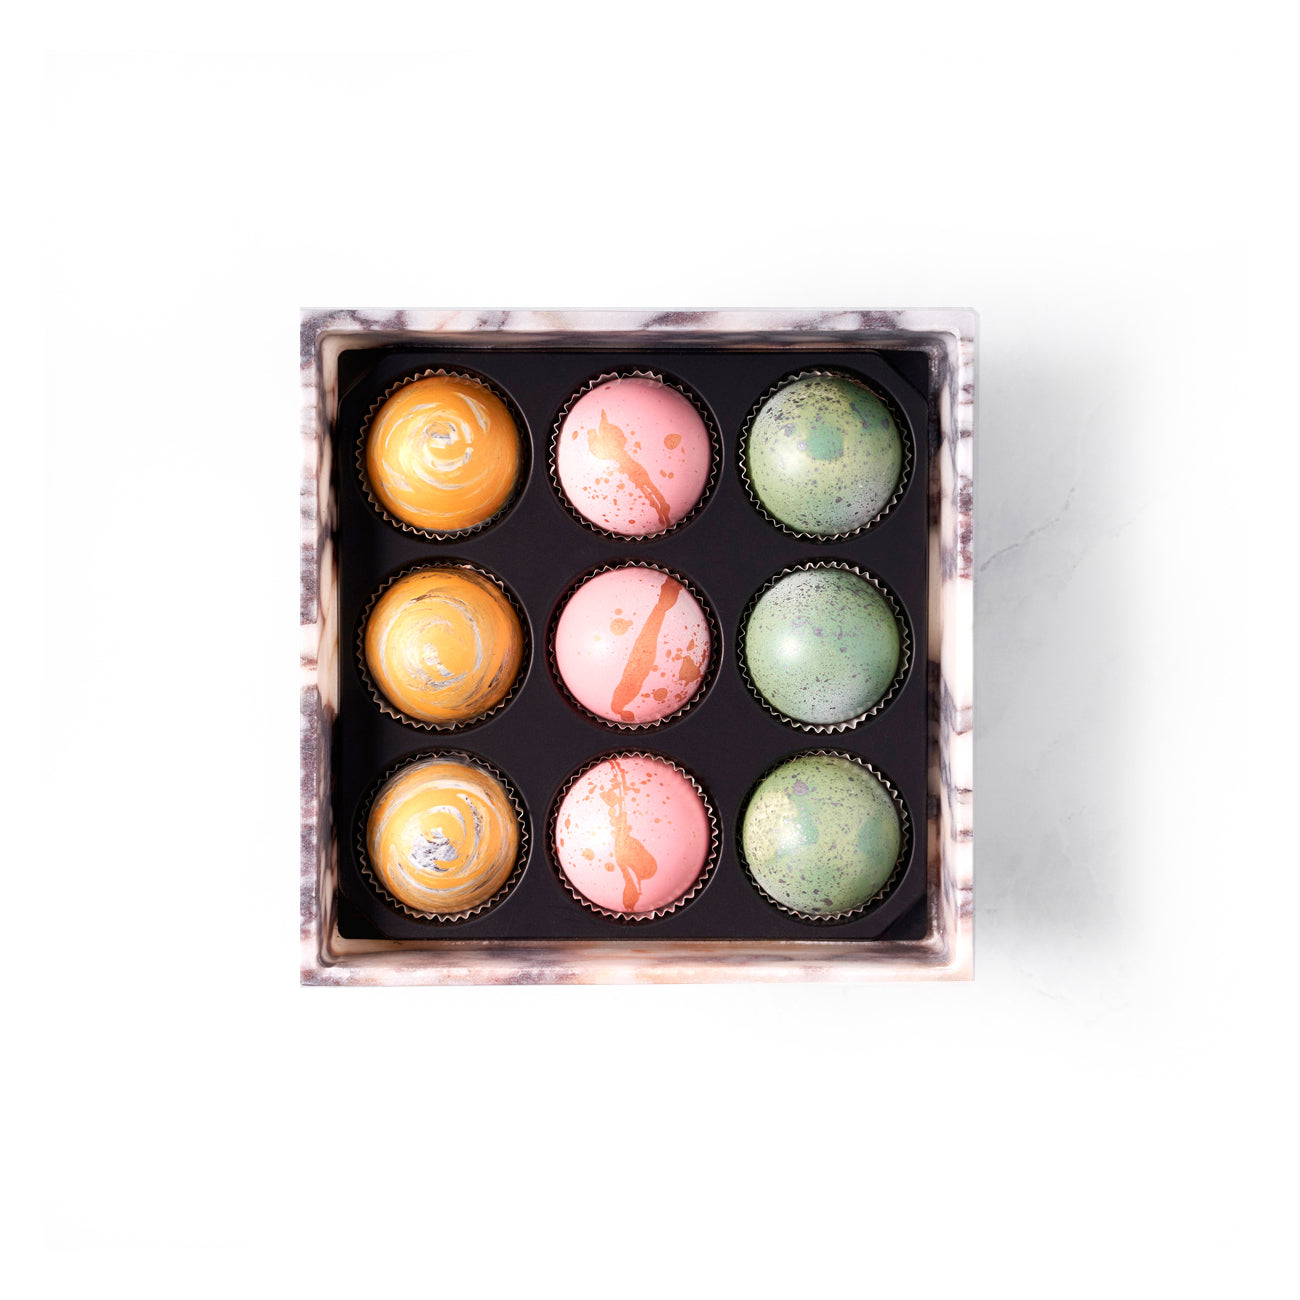 Marble Box of Chocolate Truffles, 9 pc. (Limited Edition) - Flair Chocolatier